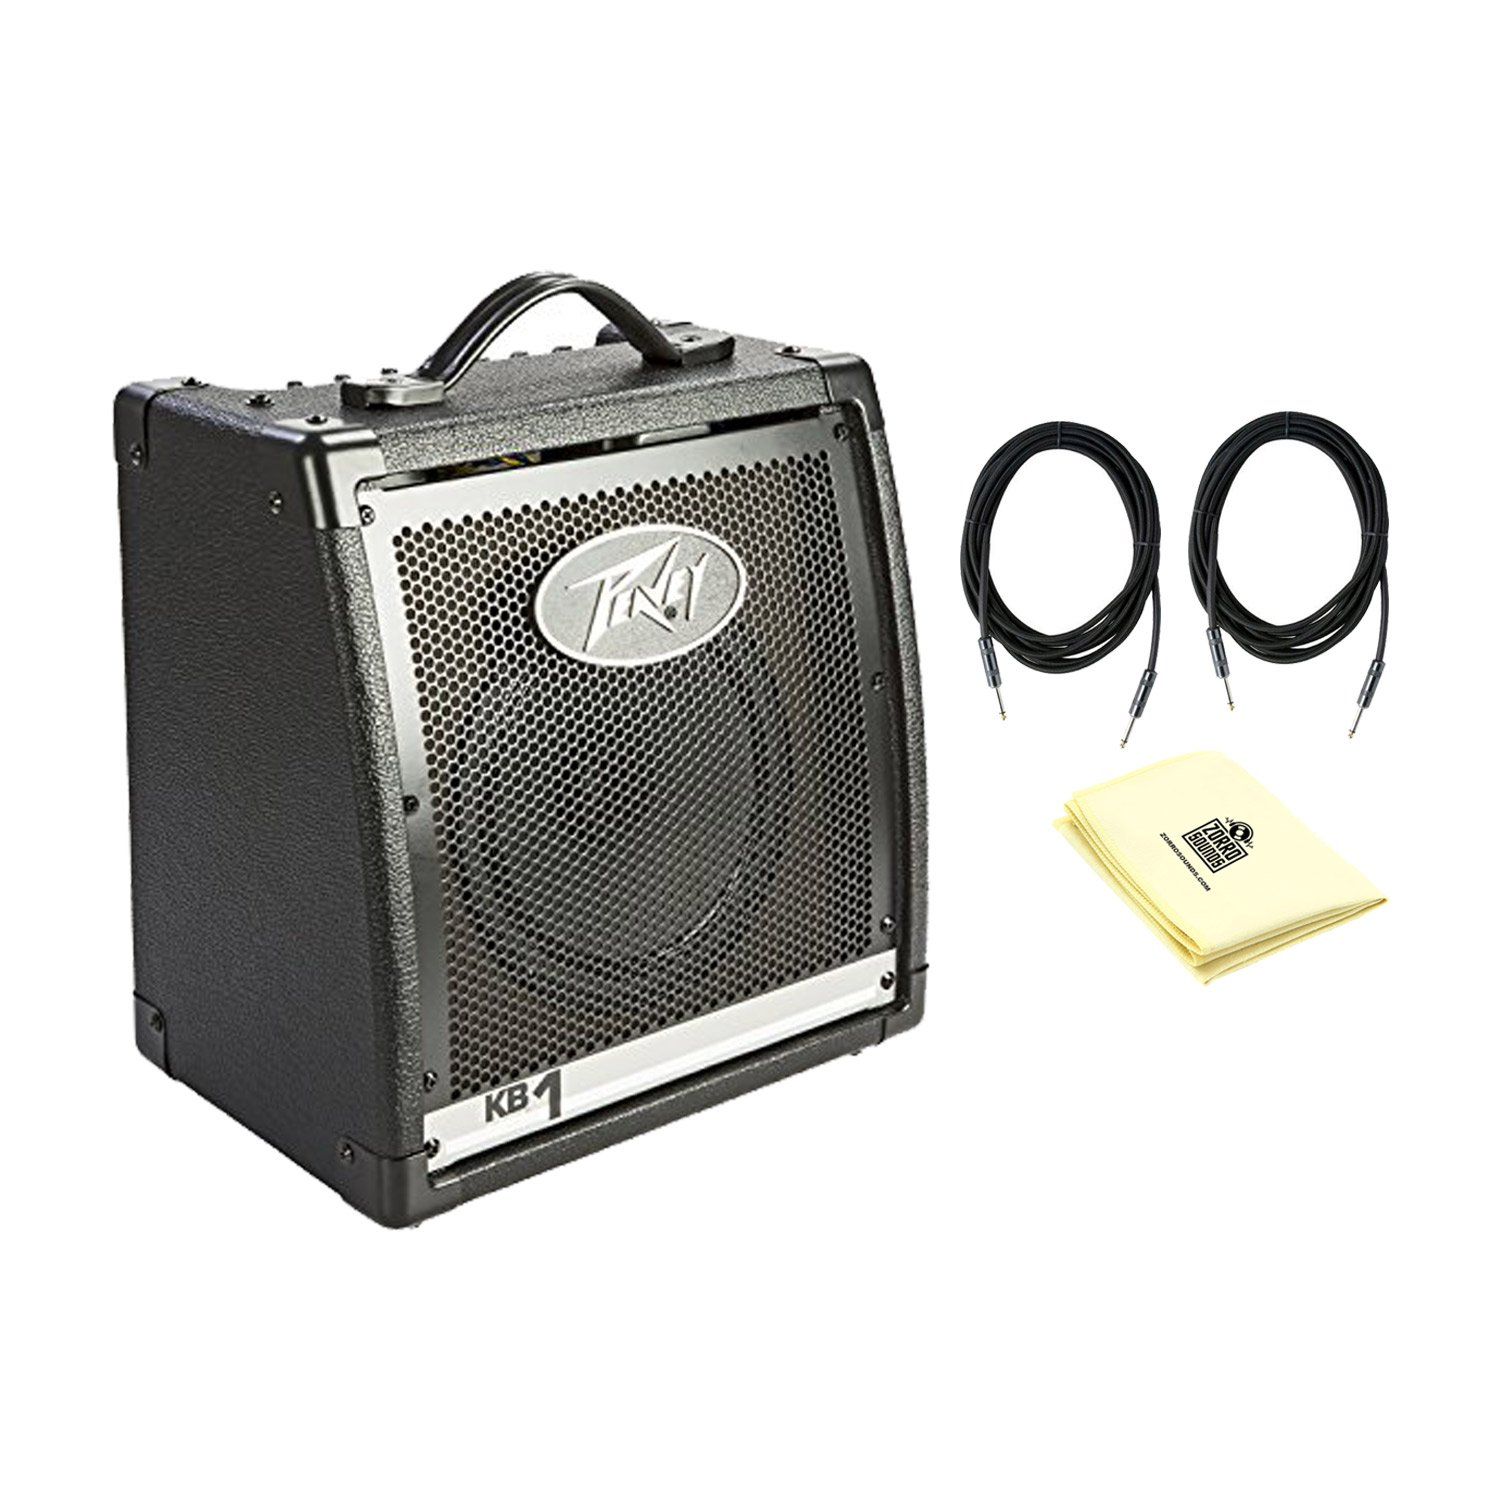 Peavey 00573100 KB 1 20W Keyboard Amplifier With a Pair of Instrument Cables and Polishing Cloth